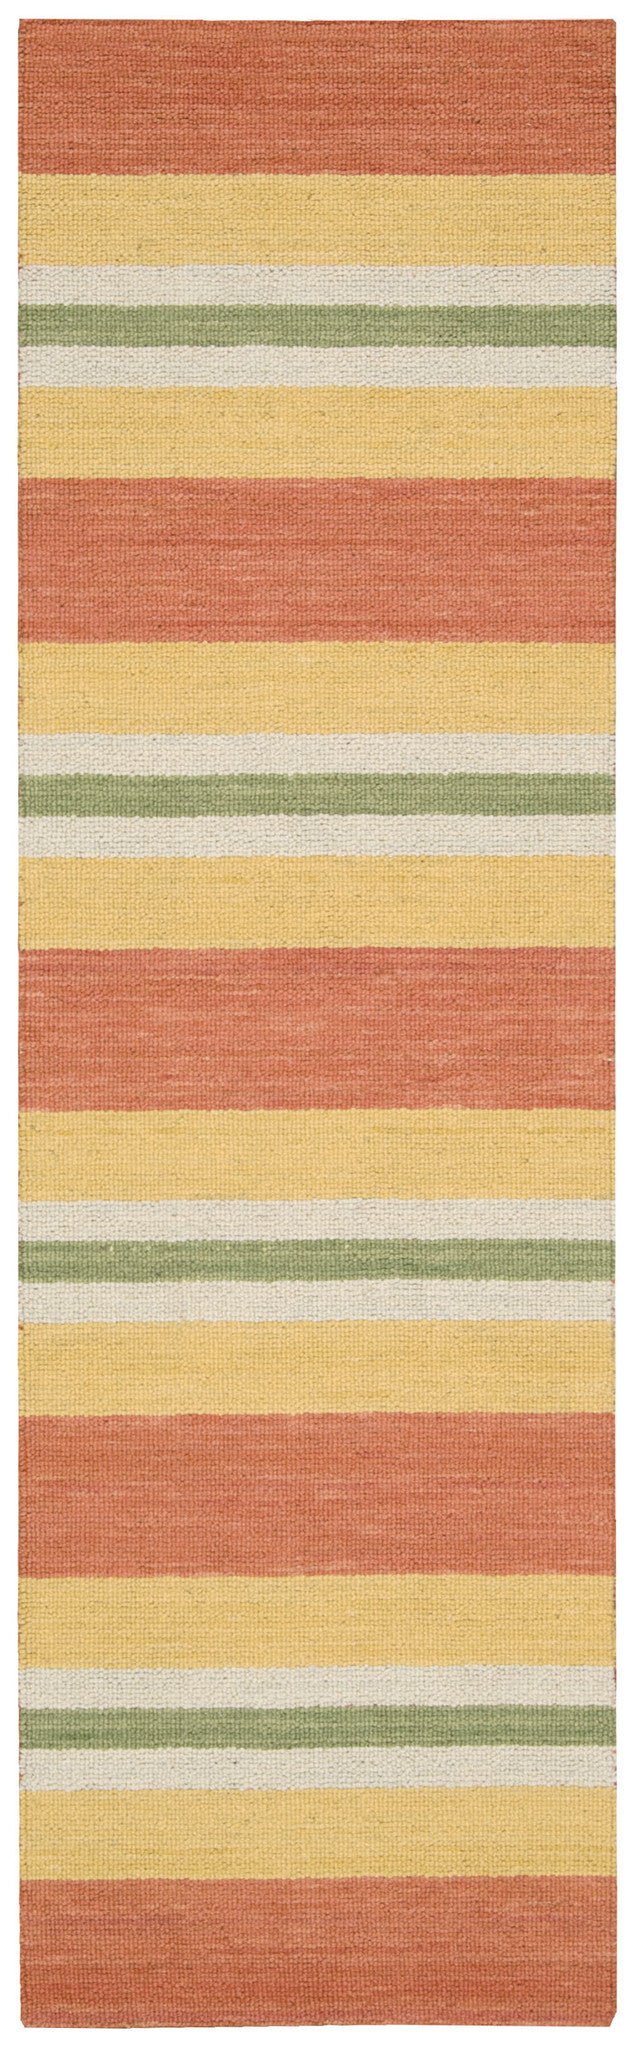 Barclay Butera Oxford Citrus Area Rug By Nourison OXFD5 CIT (Runner) | BOGO USA